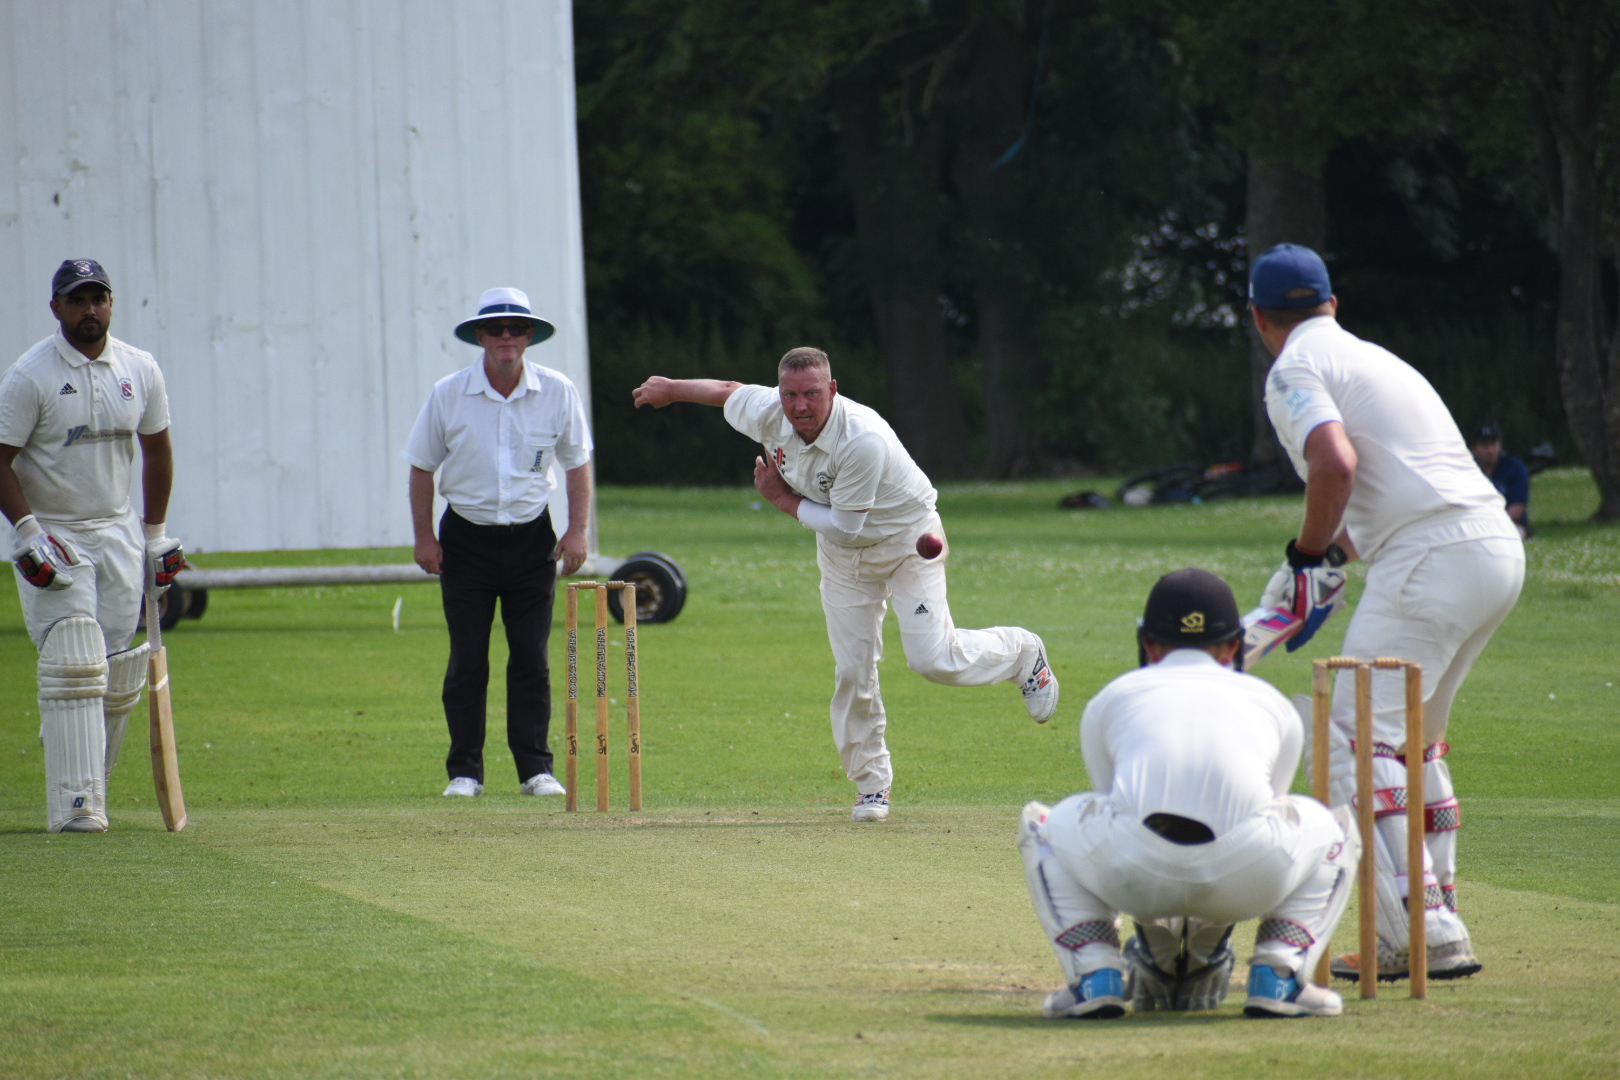 Daring Skelmanthorpe Outmuscled By On-Fire Moorlands - Sykes Cup Semi-Final Review